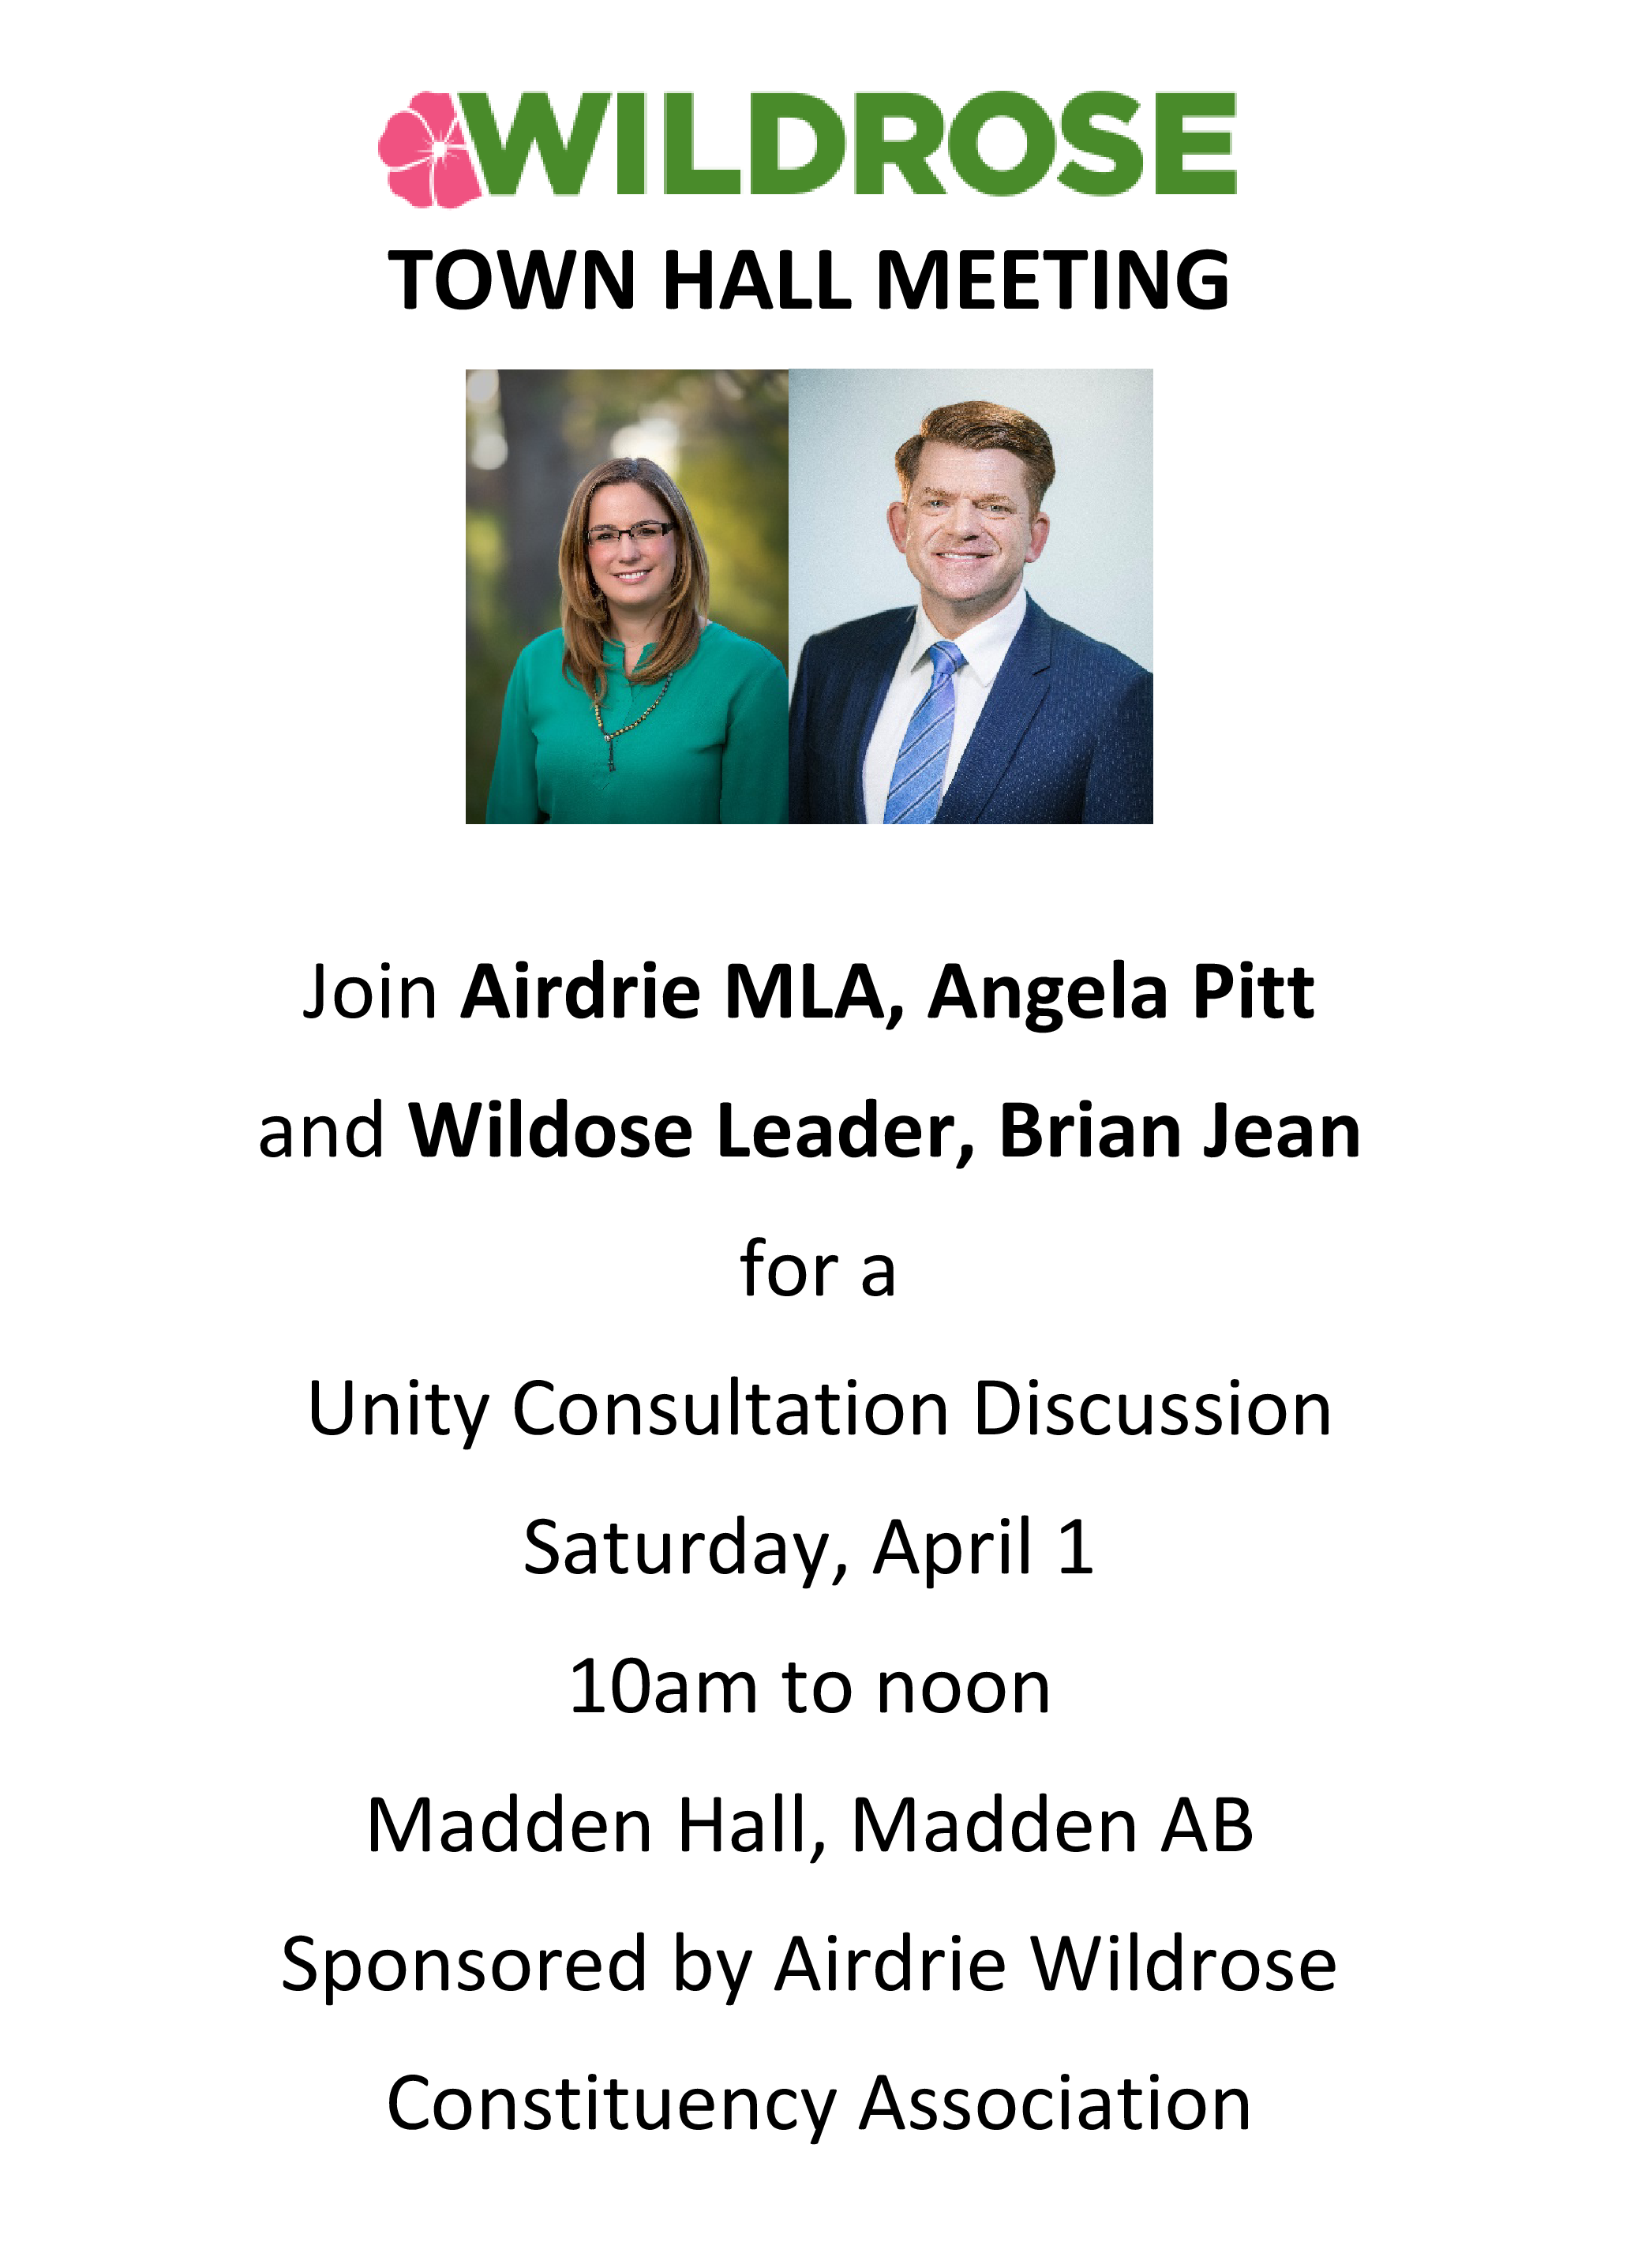 Airdrie_-_Town_Hall_Madden_29-Mar-17.png